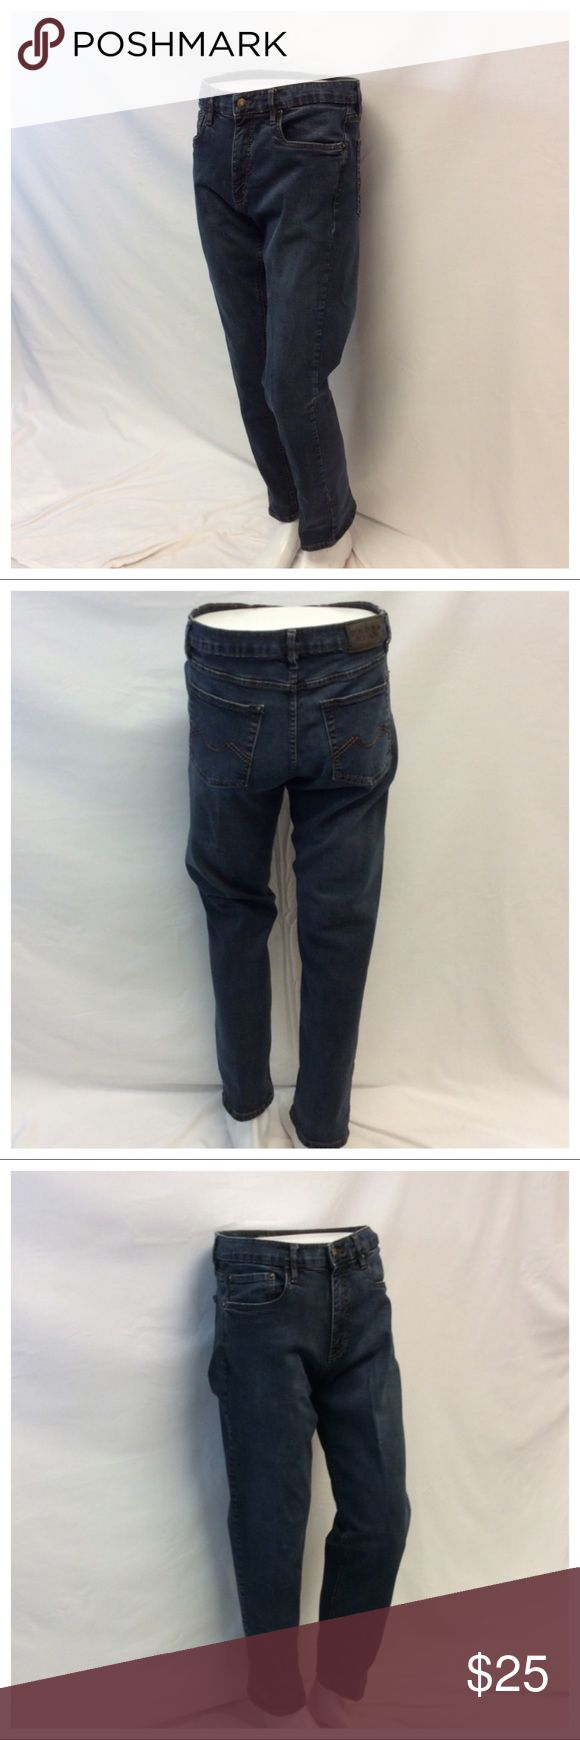 """URBAN STAR Men's Jeans URBAN STAR Men's Jeans, Size 34 32, 98% cotton, 2% spandex, machine washable. Approximate measurements are 17"""" waist laying flat, 41"""" waist to hem, 11 1/2"""" waist to crotch, 31 1/2"""" inseam, 5 1/2"""" zipper. 0612 Urban Star Jeans"""